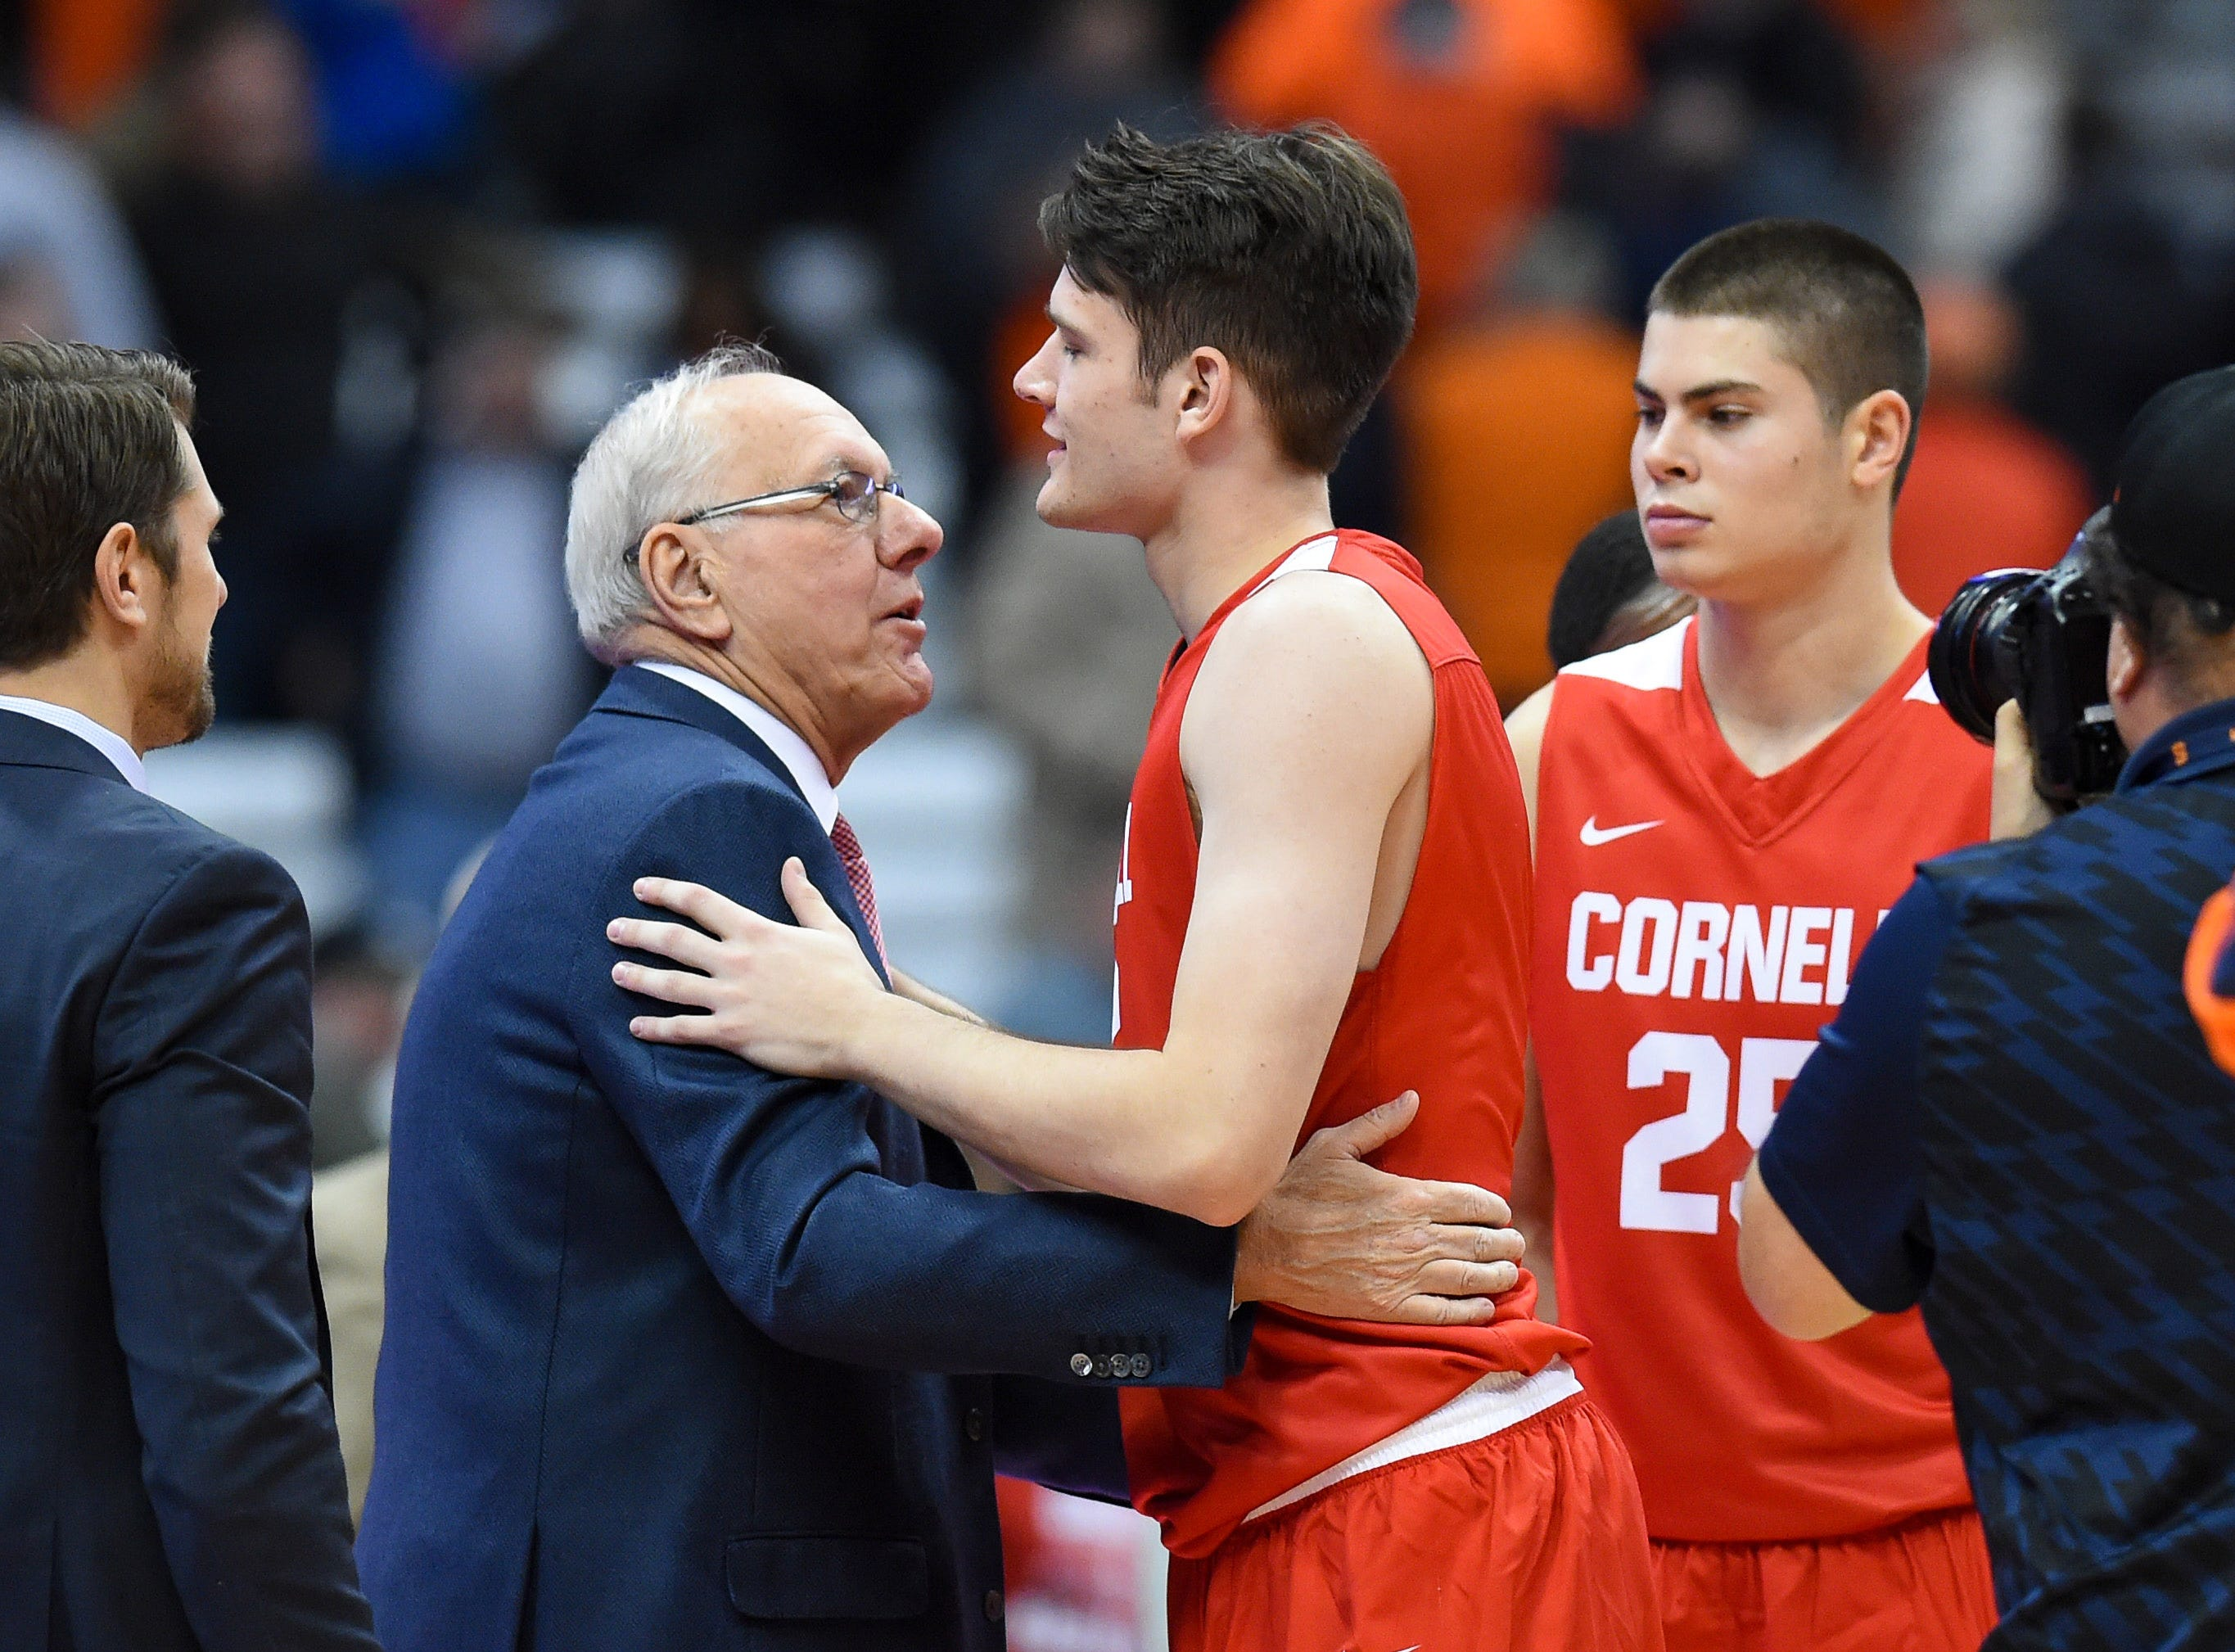 Nov 10, 2017; Syracuse, NY, USA; Syracuse Orange head coach Jim Boeheim greets his son Cornell Big Red forward Jimmy Boeheim (3) following the game at the Carrier Dome. Mandatory Credit: Rich Barnes-USA TODAY Sports